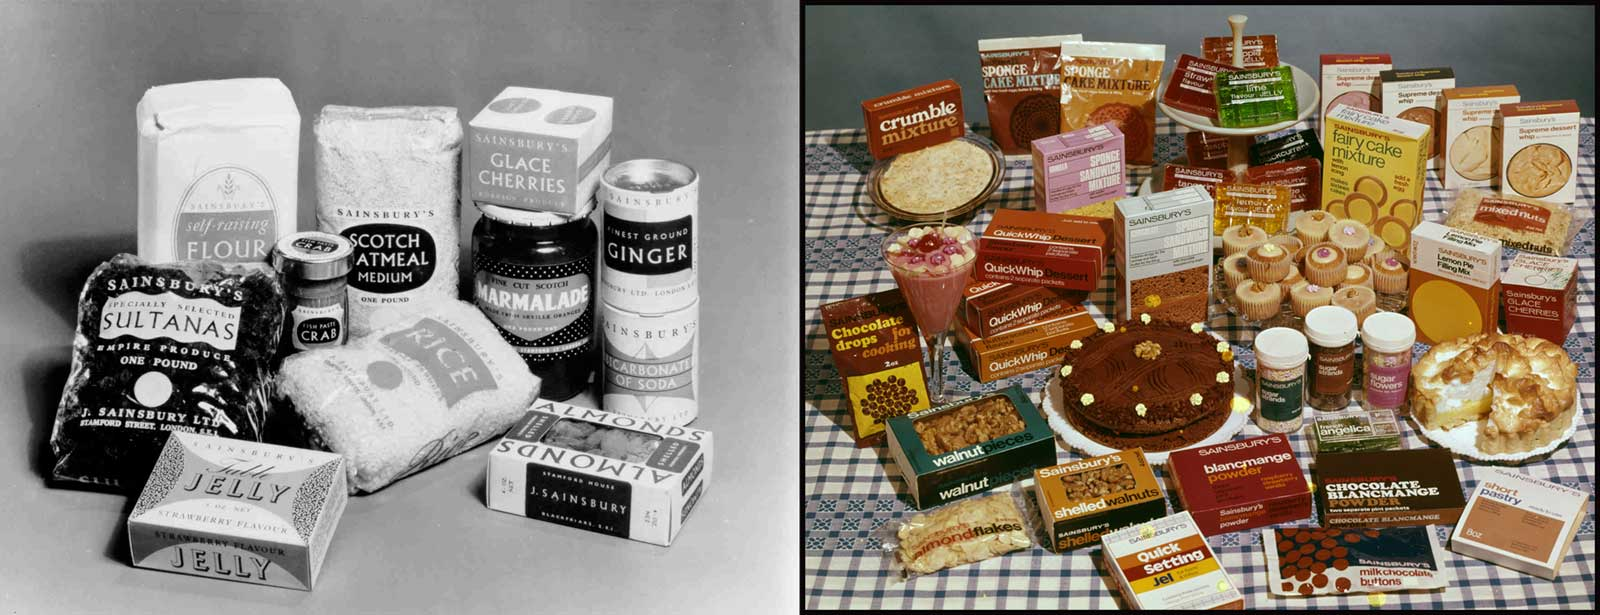 Comparison of Sainsbury's own-brand packaging in 1950 and 1970.